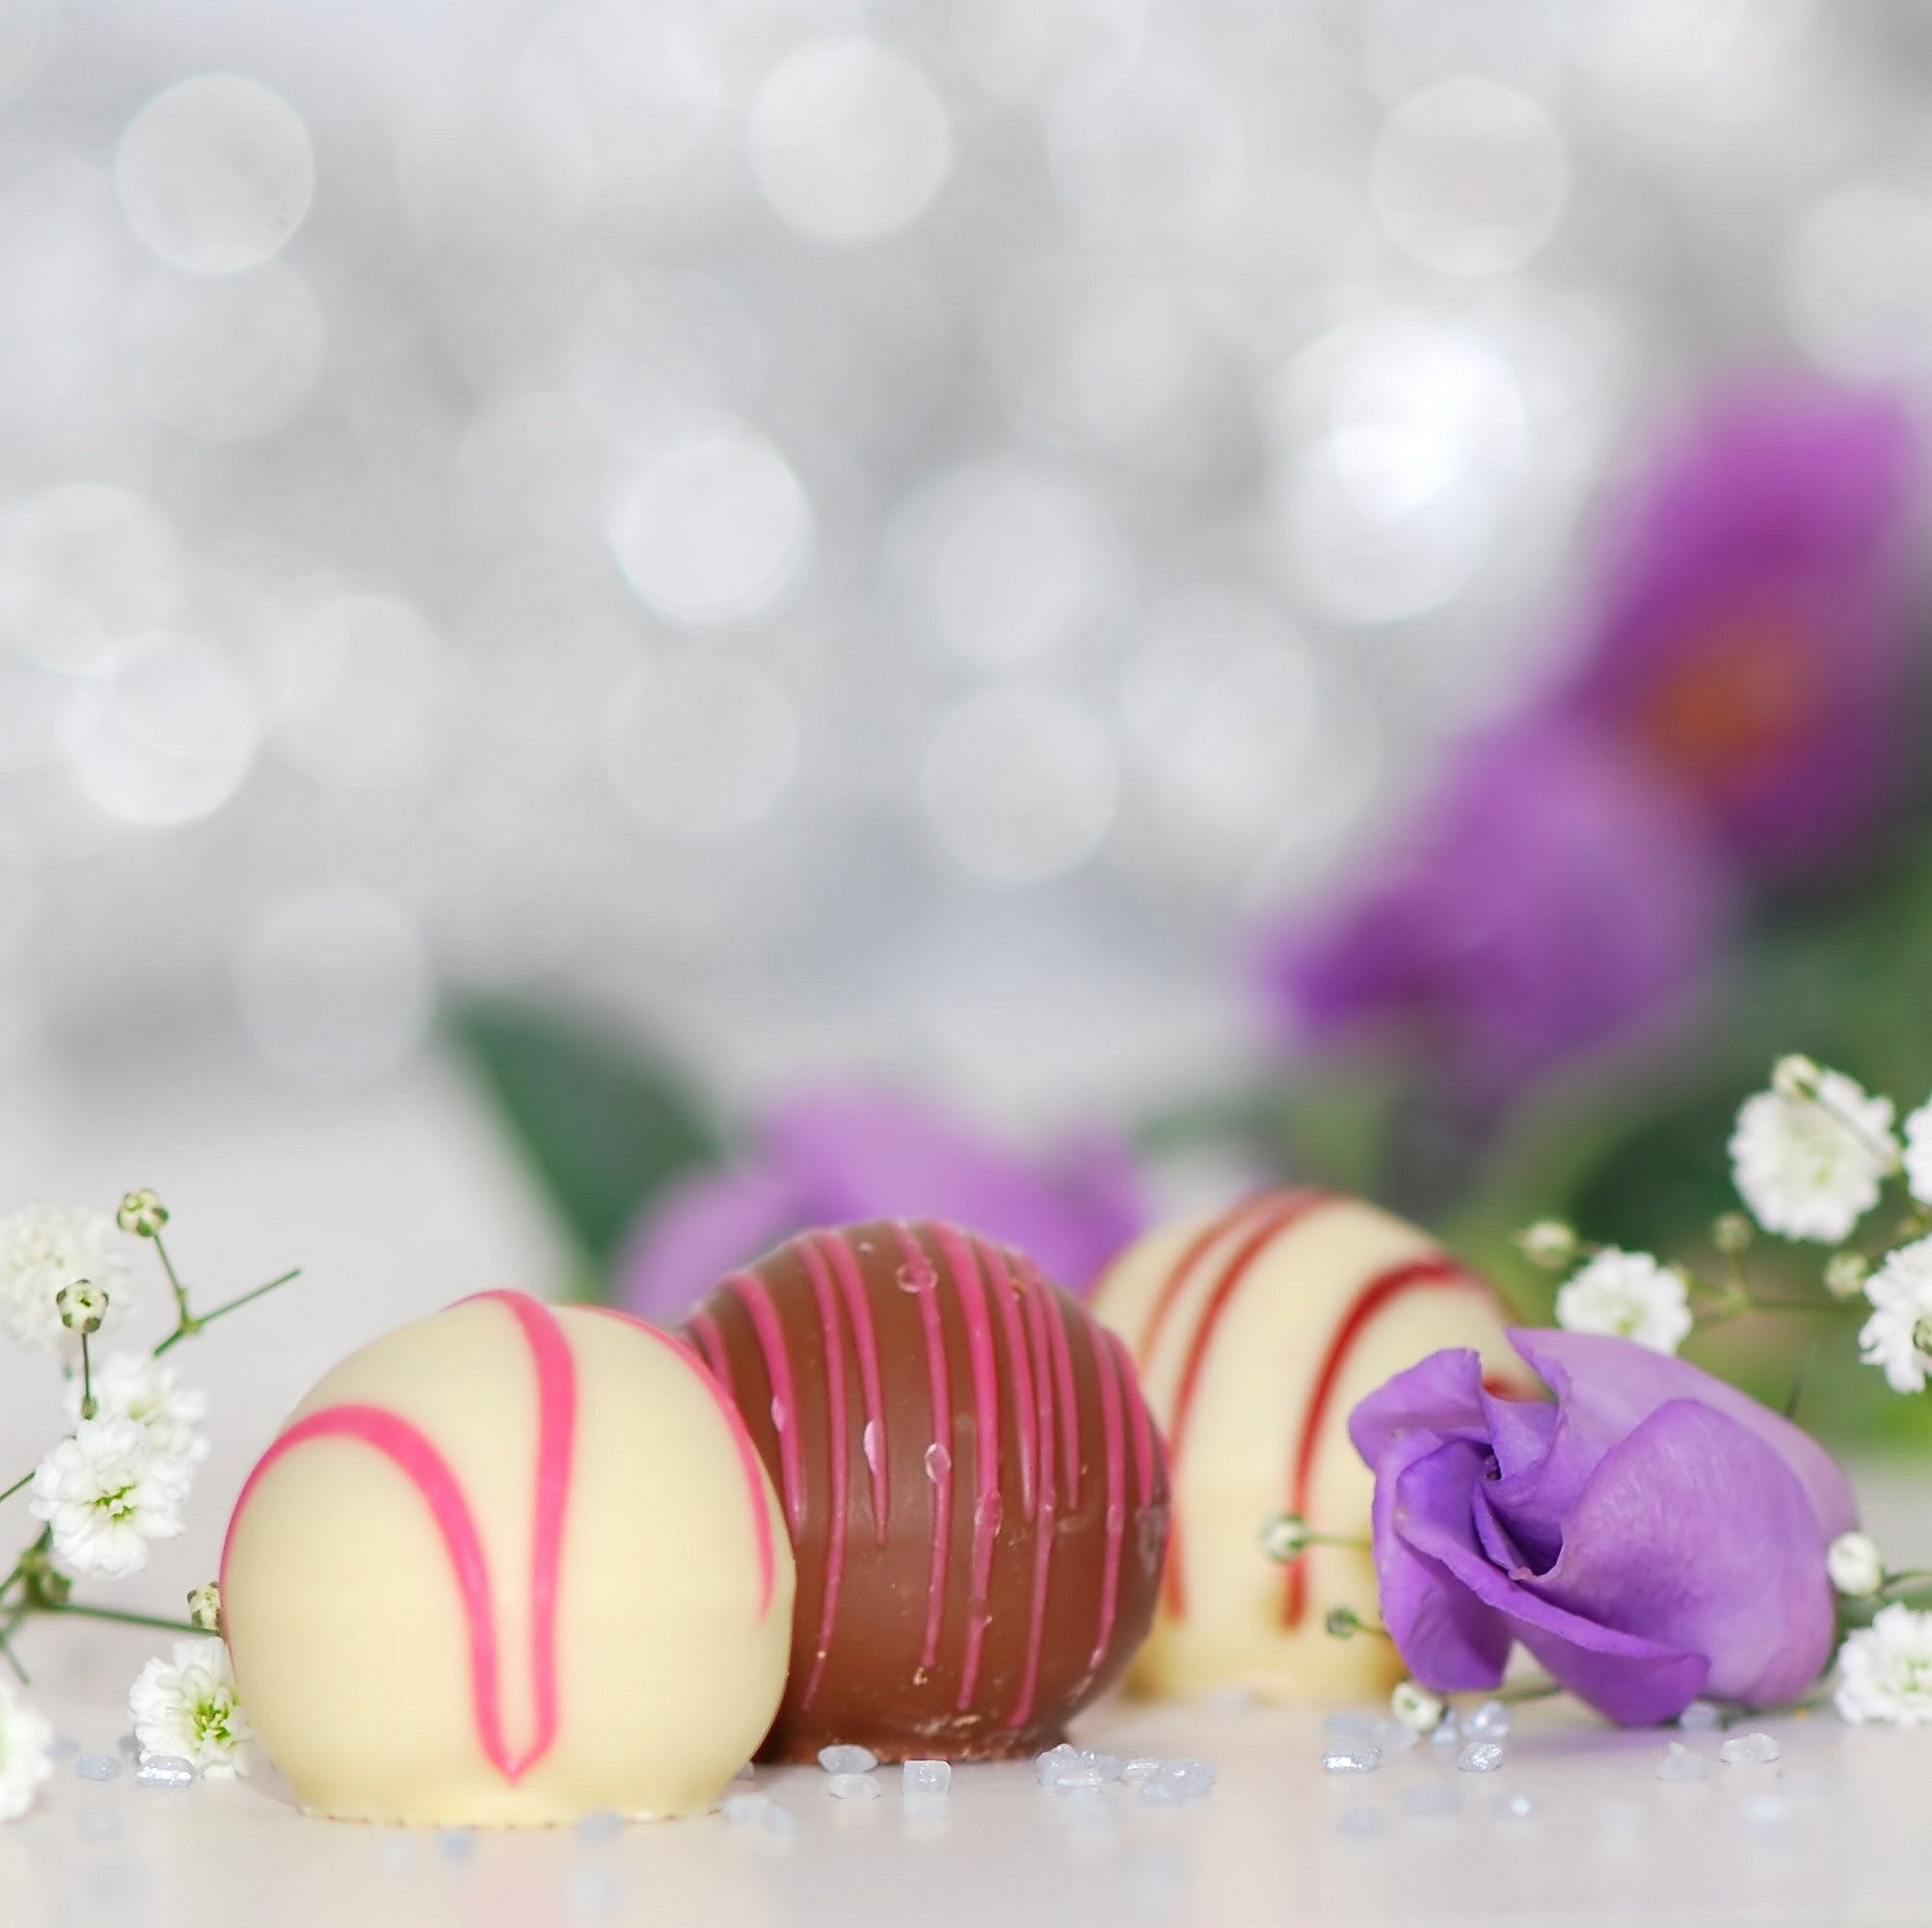 White and Chocolate Sweets With Purple Petal Flower Photo